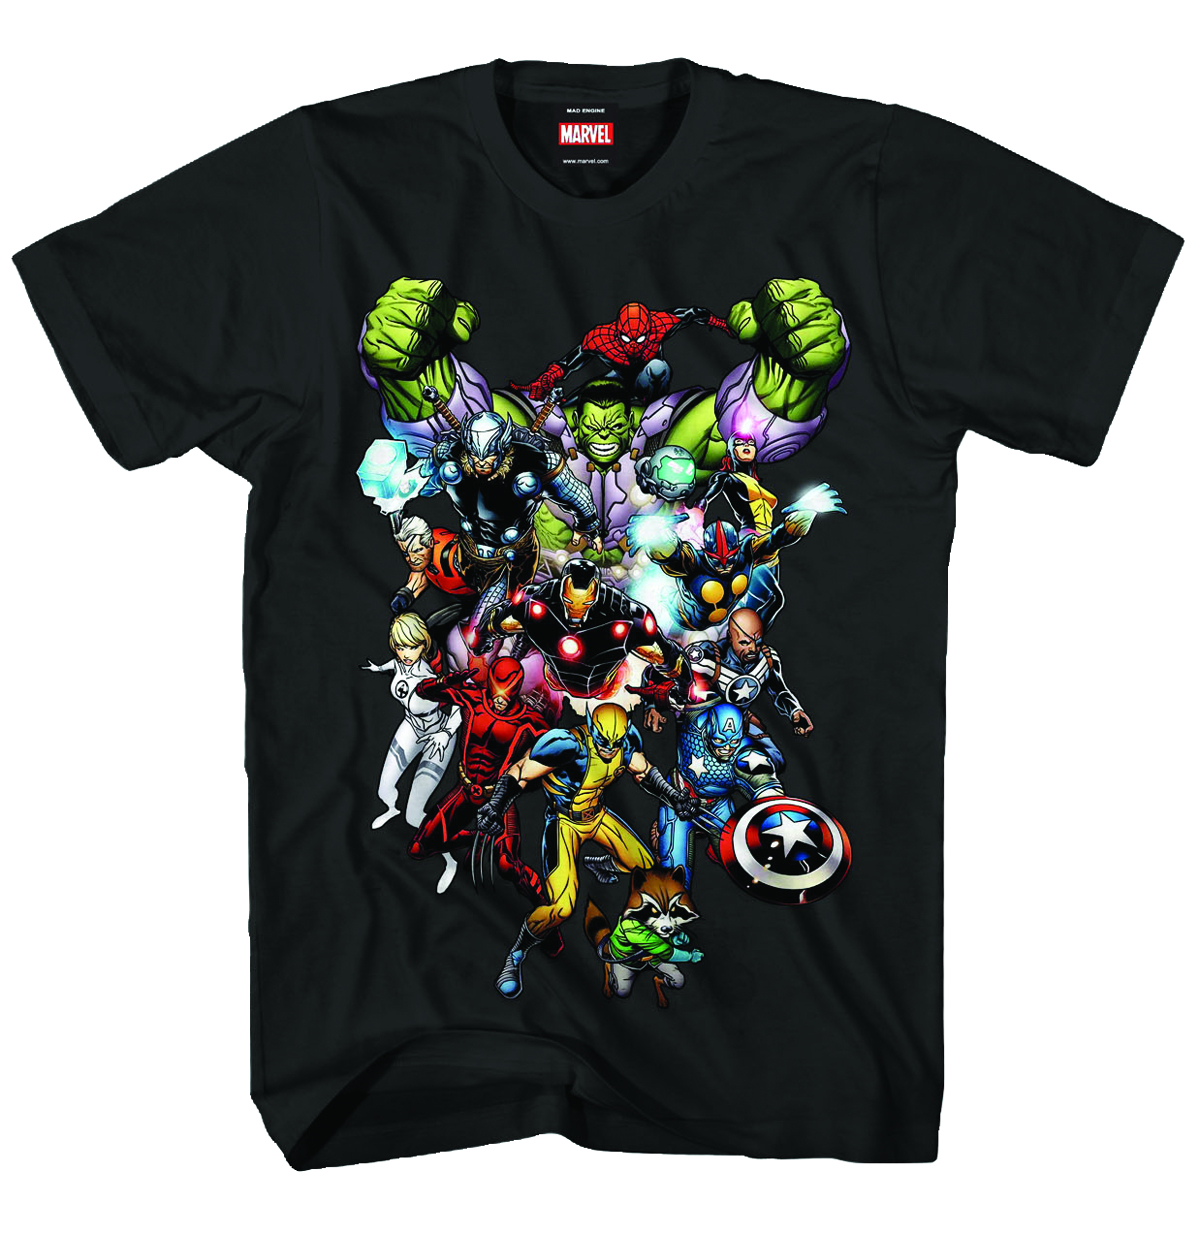 MARVEL HEROES MARVEL NOW PX BLK T/S MED